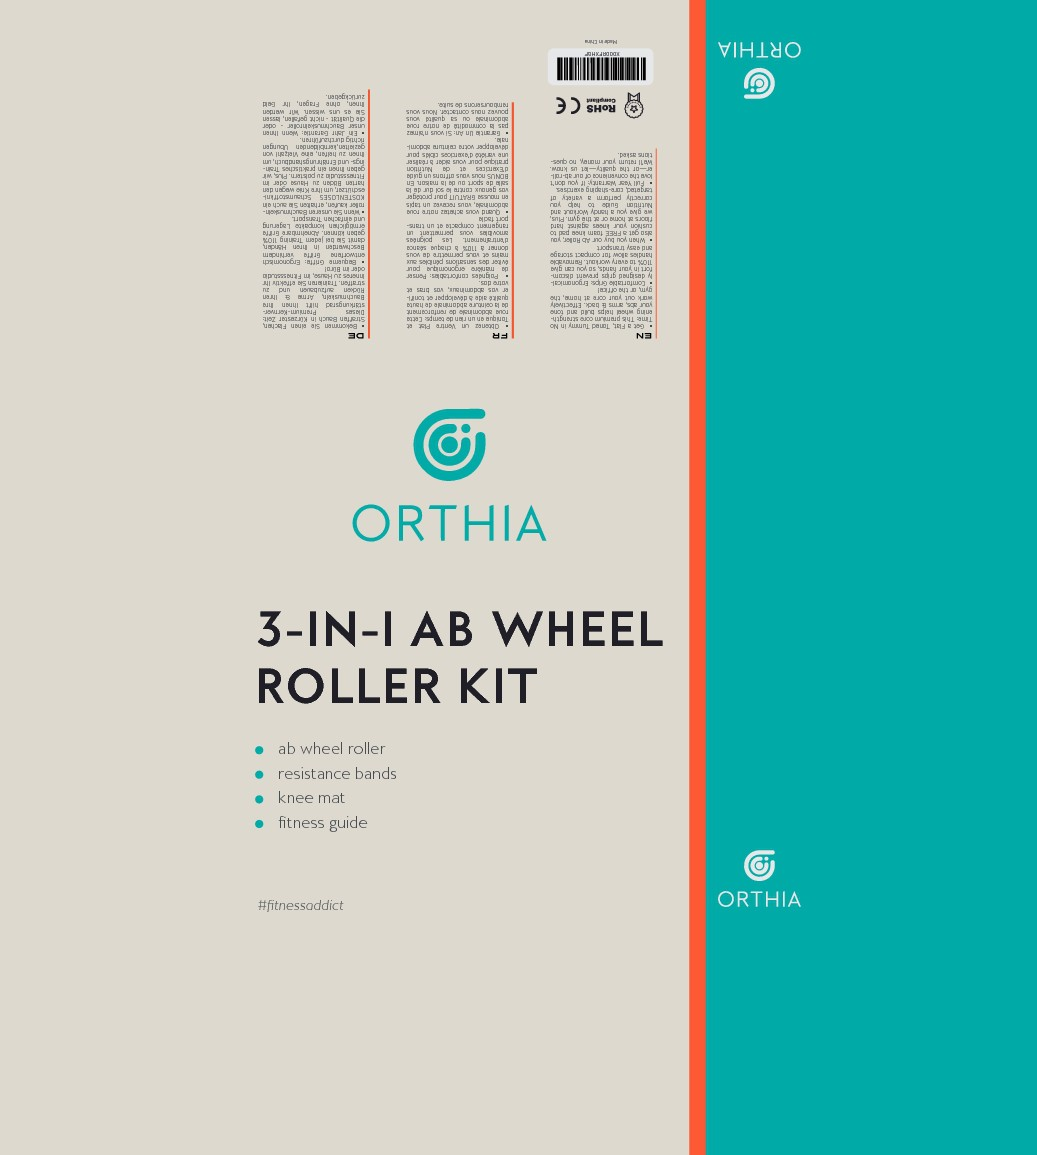 Orthia Needs an Attention Grabbing and Perceived Value Increasing Packaging For Ab Wheel